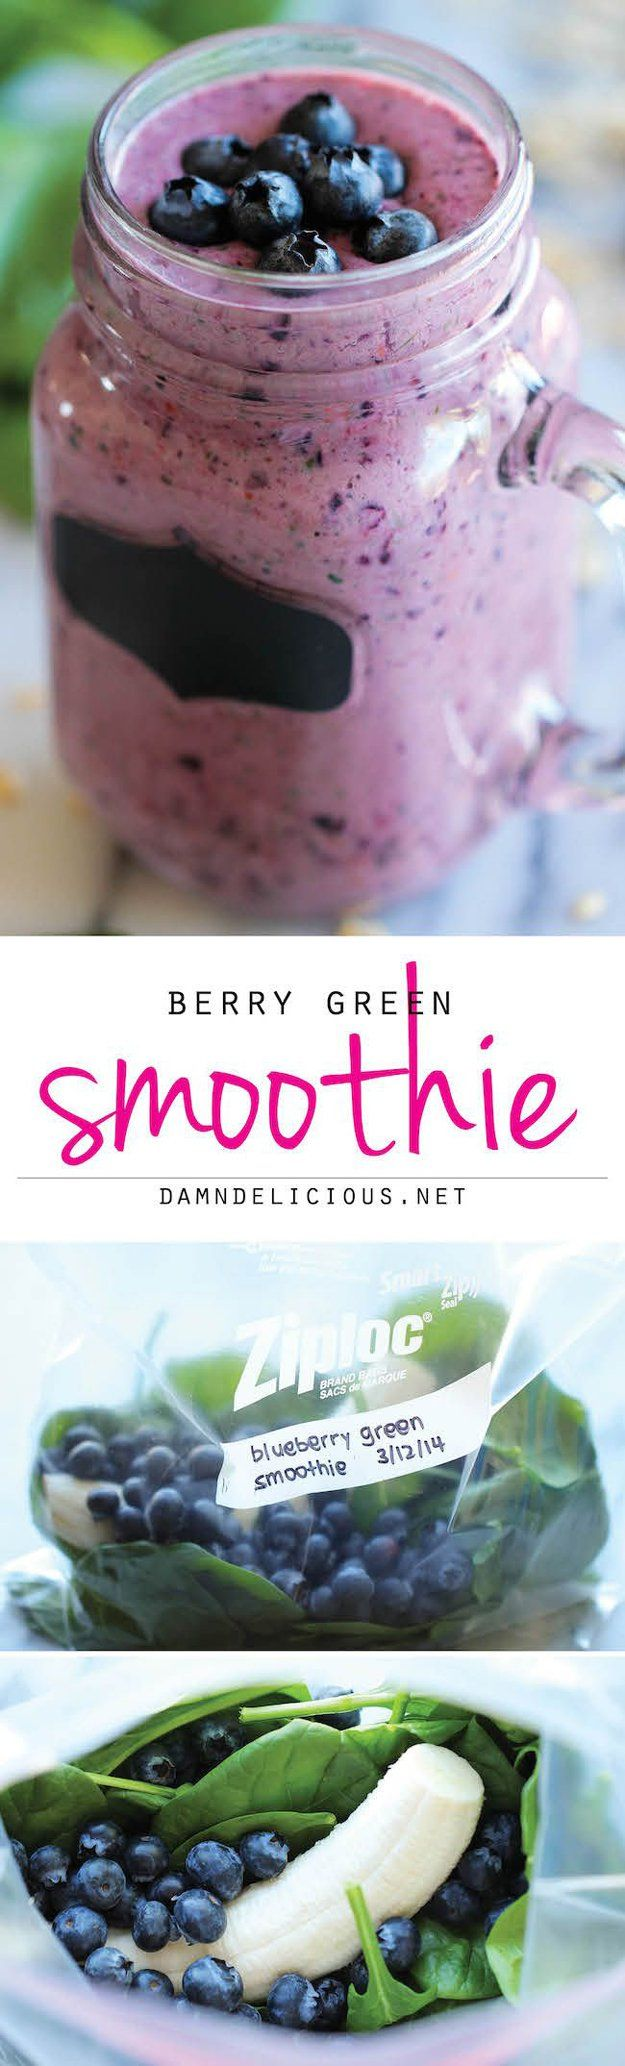 Best DIY Smoothie Recipe | diyprojects.com/19-healthy-smoothies-that-do-the-body-good/